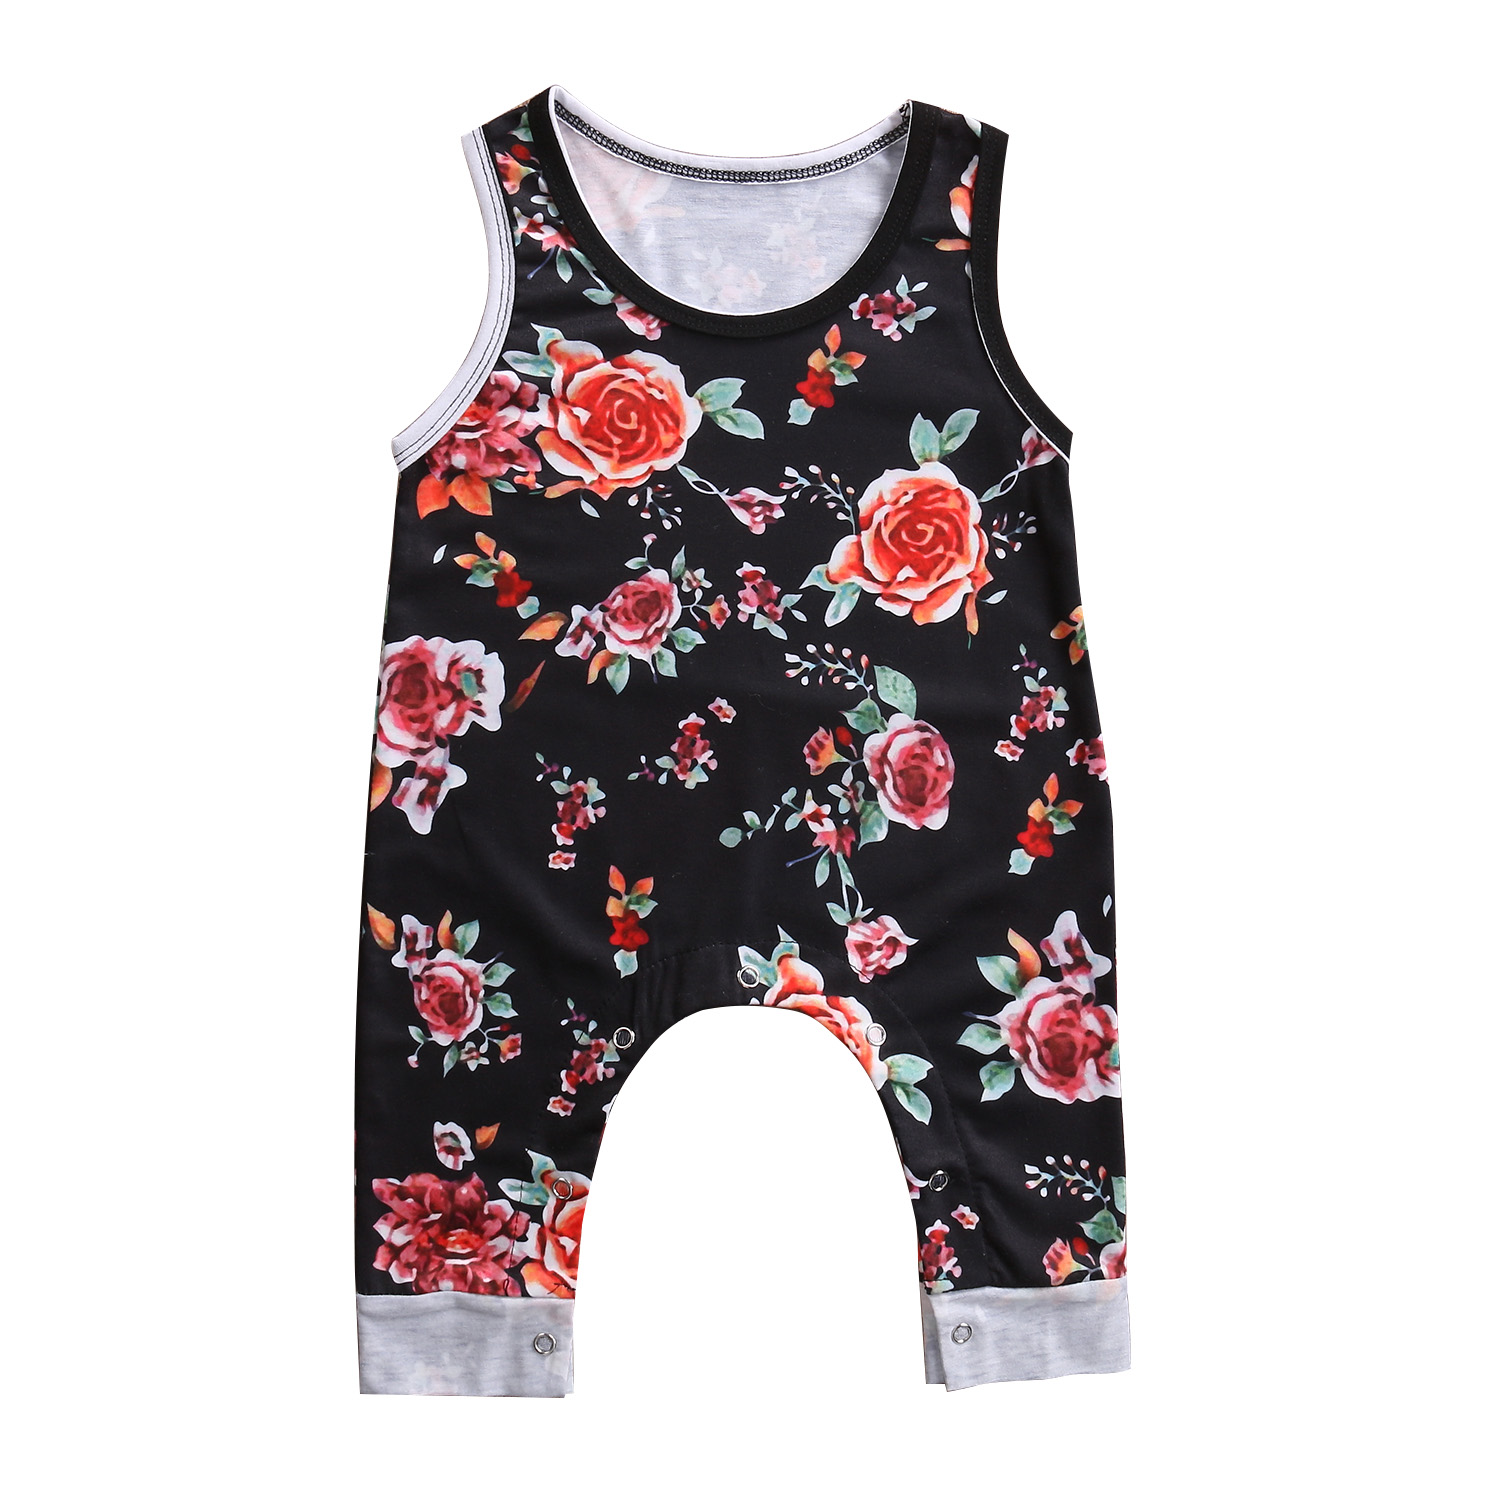 Hot sell Newborn Infant Baby Girl Clothes Summer Floral Sleeveless Romper Jumpsuit Baby Clothing Outfits Sunsuit